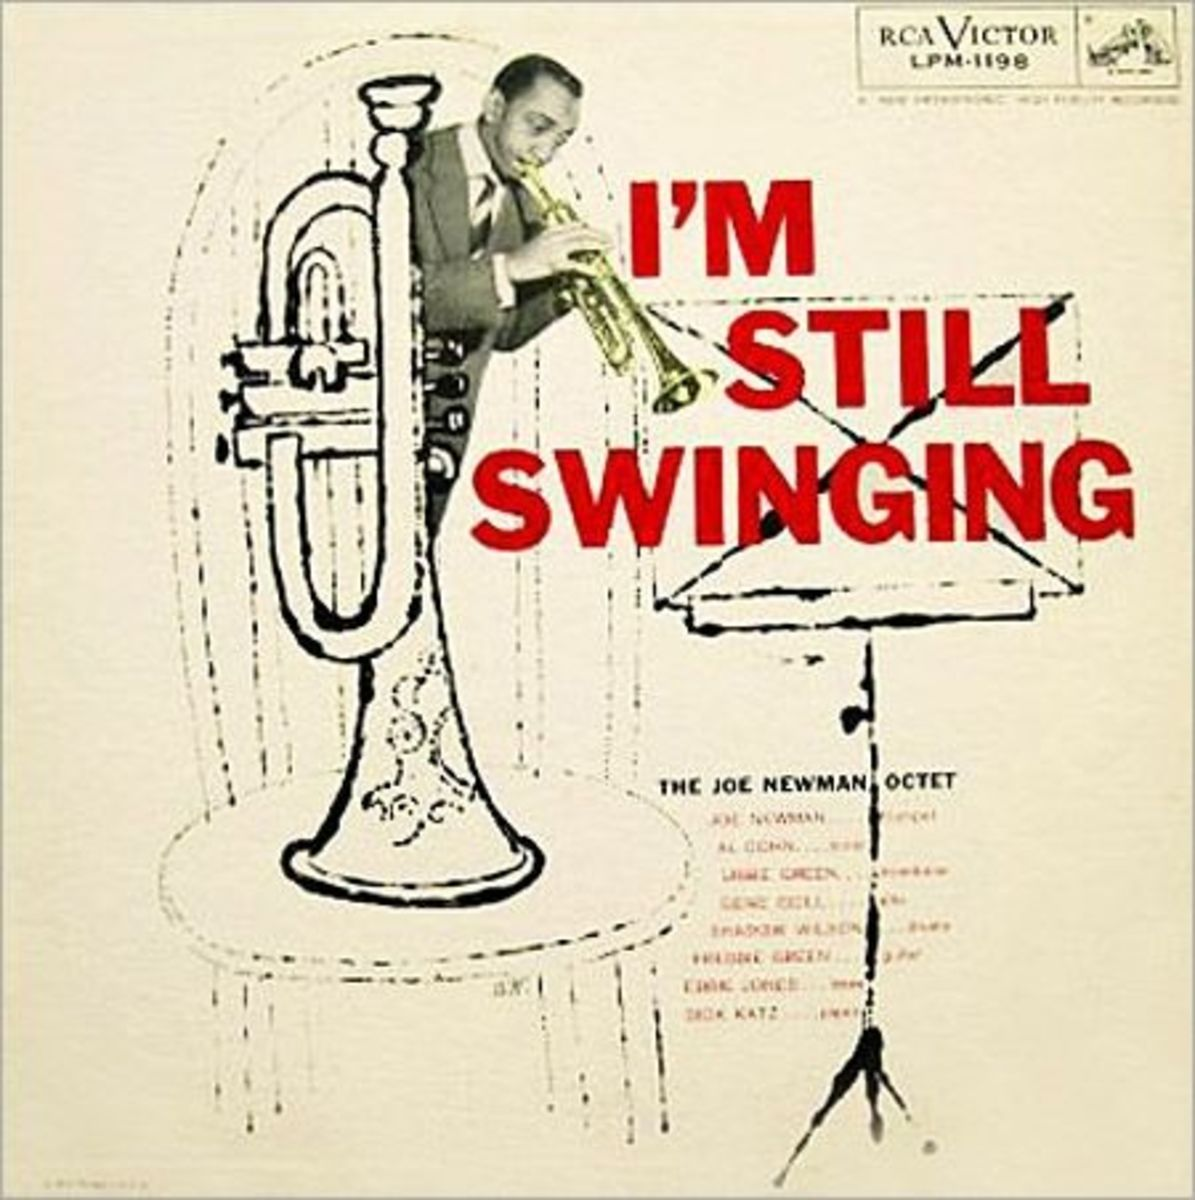 "Joe Newman ""I´m Still Swinging"" RCA Victor 1198 12"" LP Vinyl Record, Album Cover Art and Design by Andy Warhol"